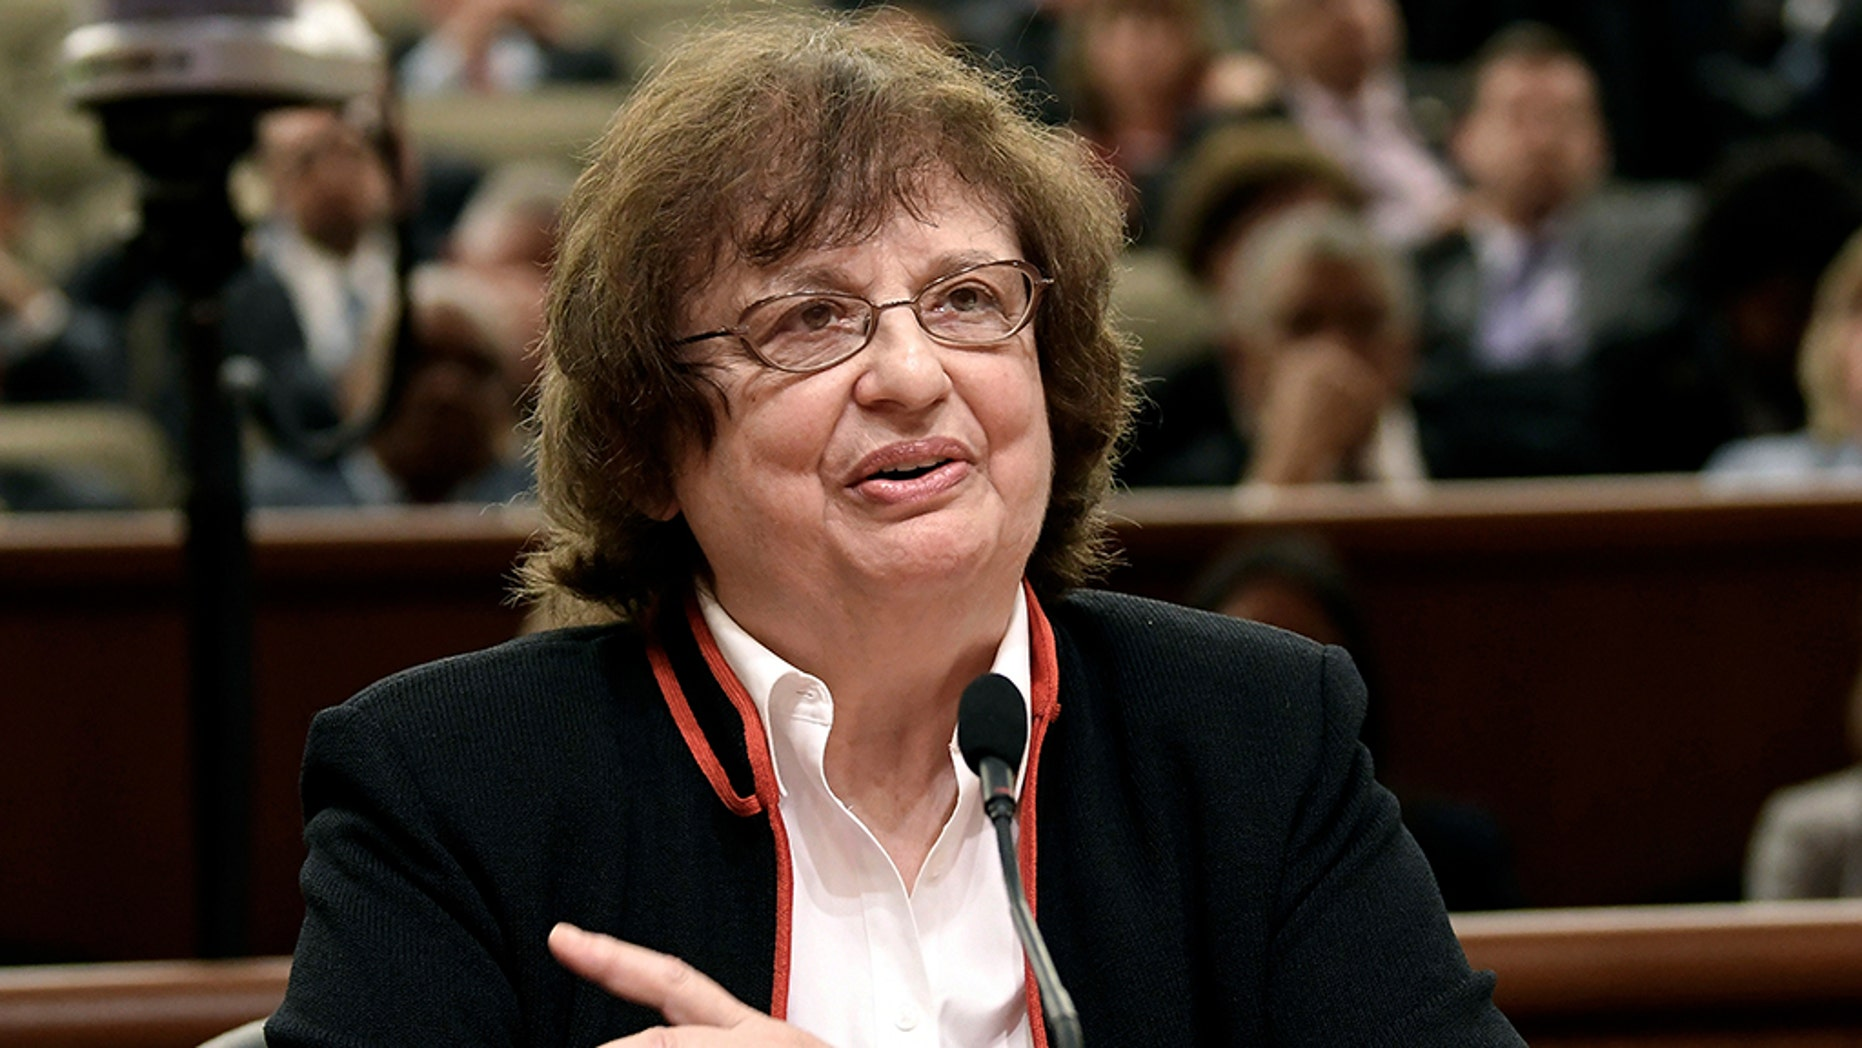 Attorney General Barbara Underwood announced Thursday that six hospitals in New York have agreed to reimburse victims of sexual assault illegally charged up to $ 3,000 for rape examinations that should have been billed to the state or their insurers. (AP Photo / Hans Pennink)